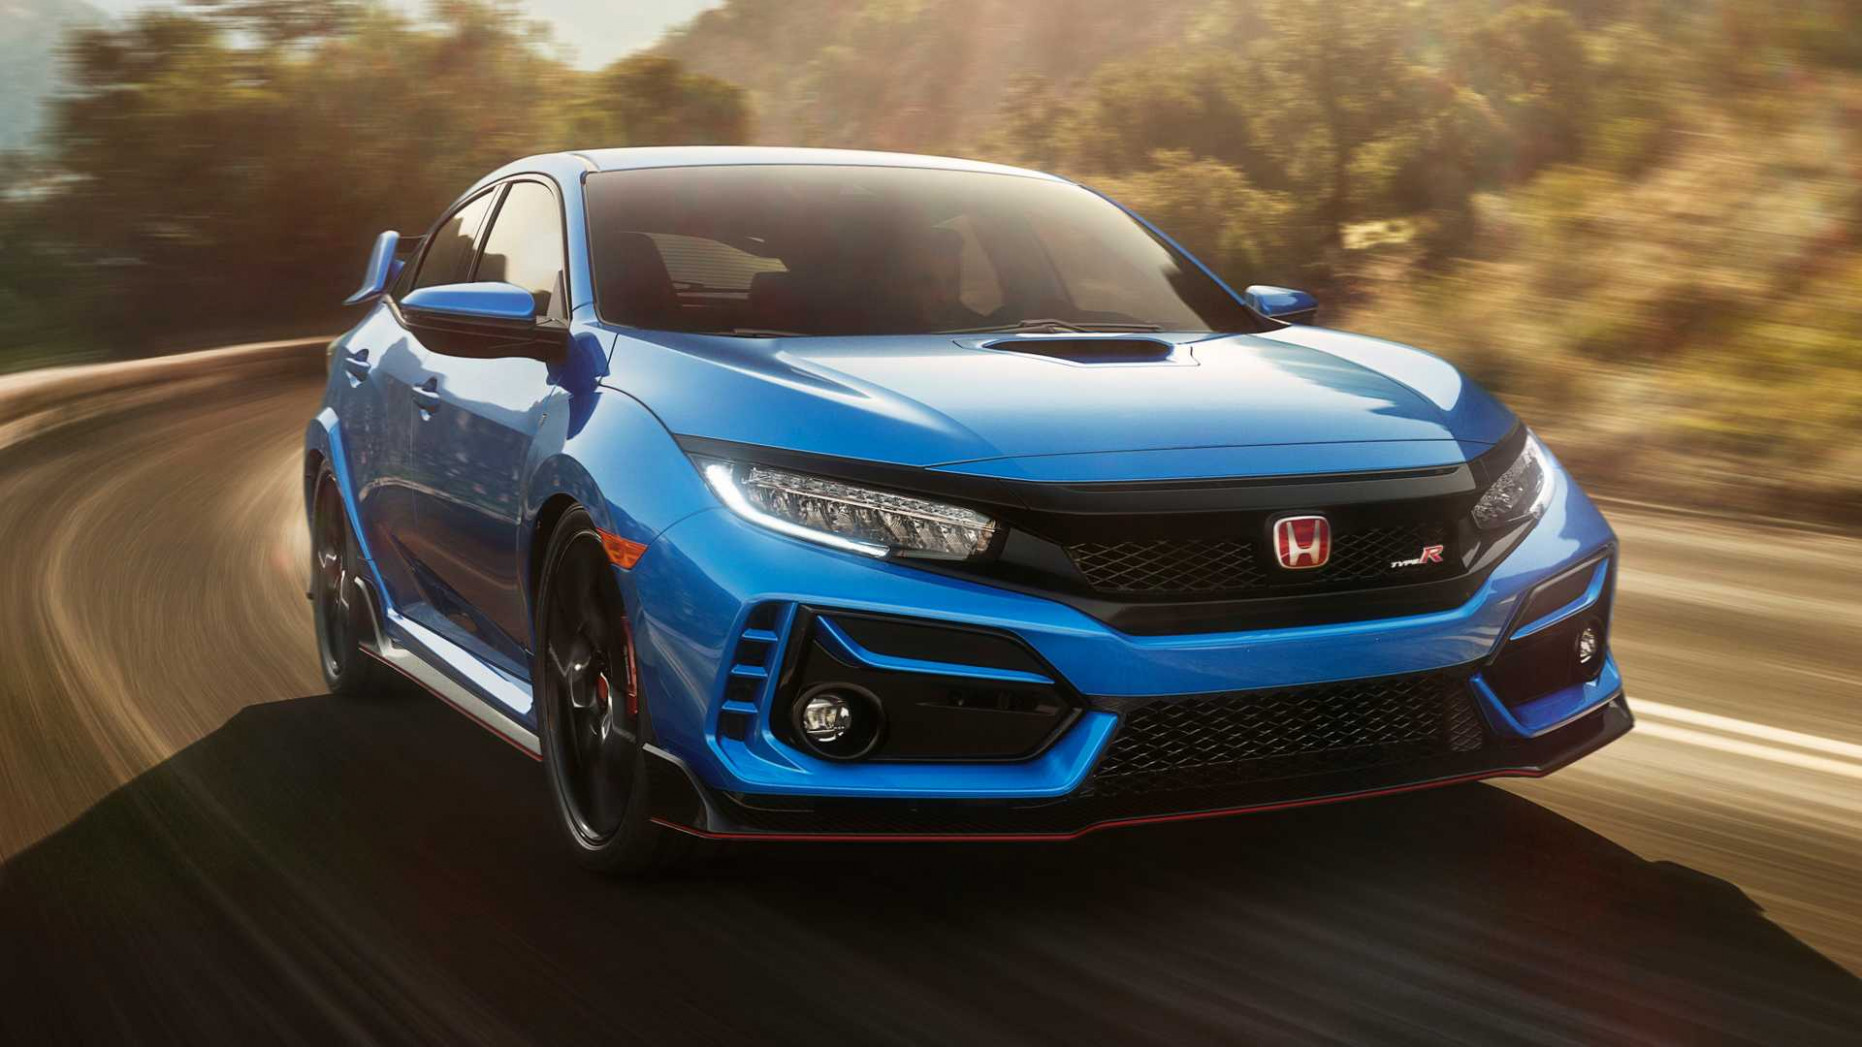 8 Honda Civic Type R Revealed With Visual And Hardware Changes - honda type r 2020 specs